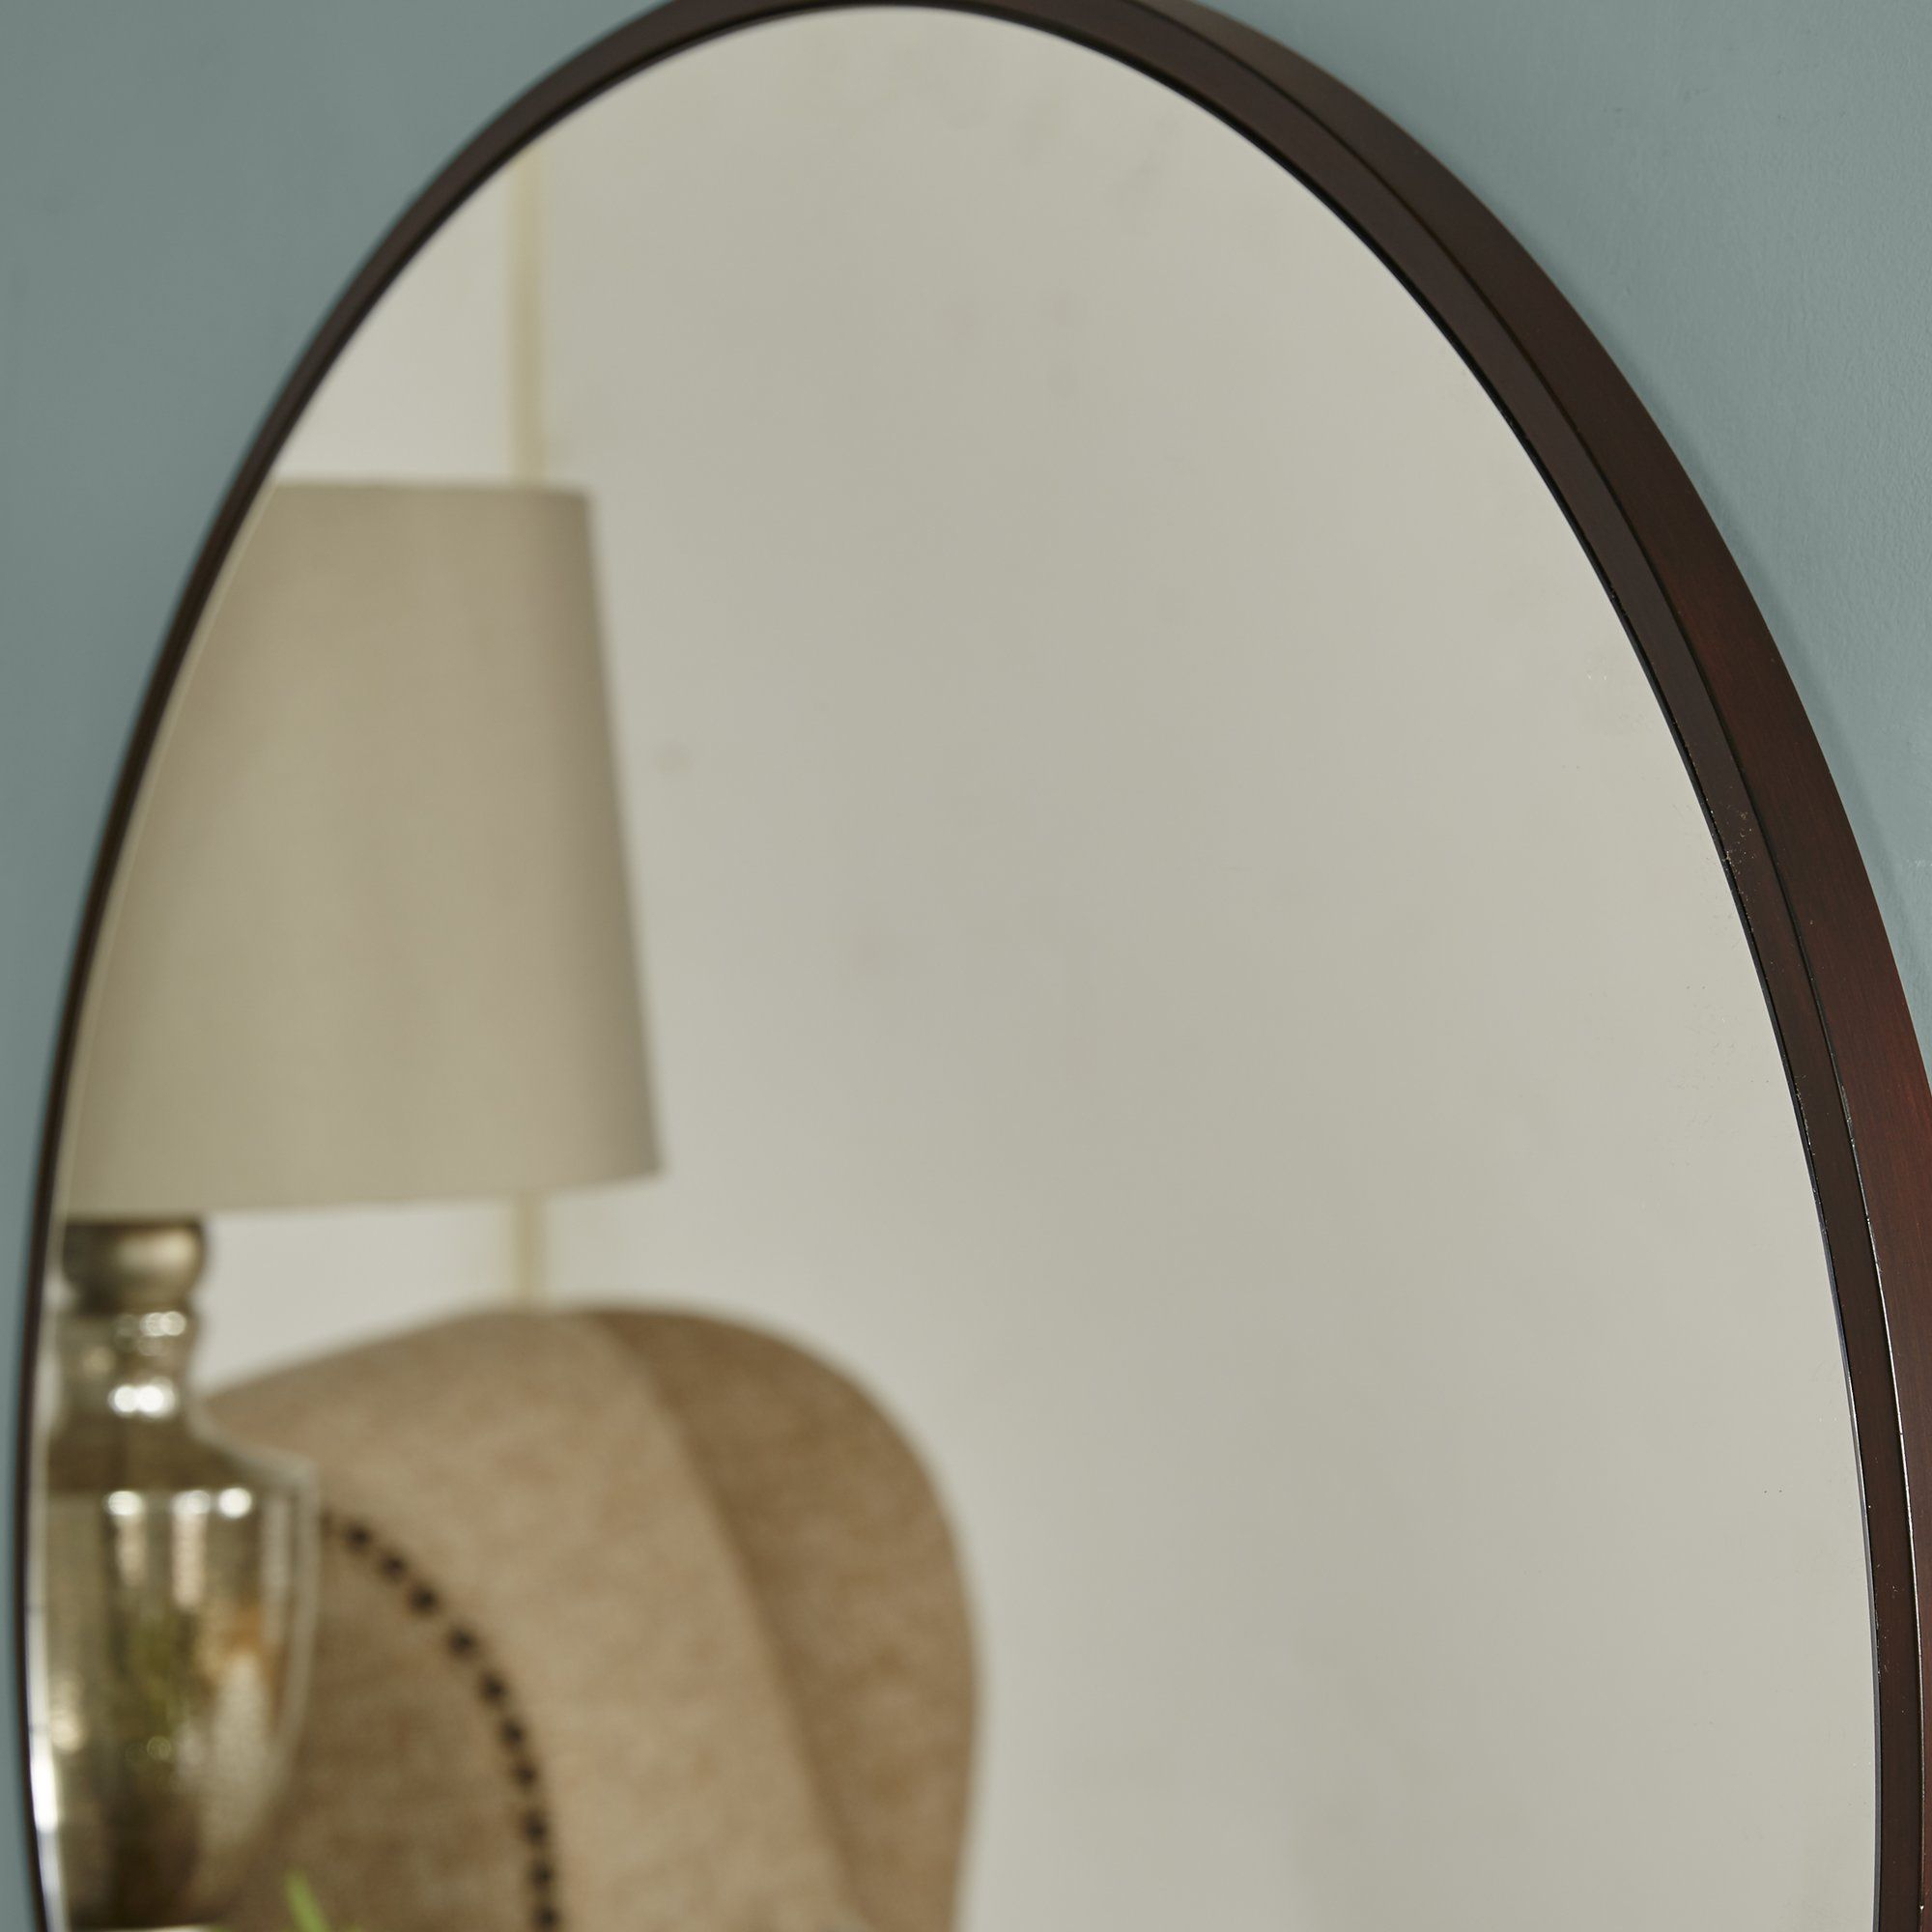 Levan Modern & Contemporary Beveled Accent Mirror | Mirrors Throughout Modern & Contemporary Beveled Accent Mirrors (View 21 of 30)